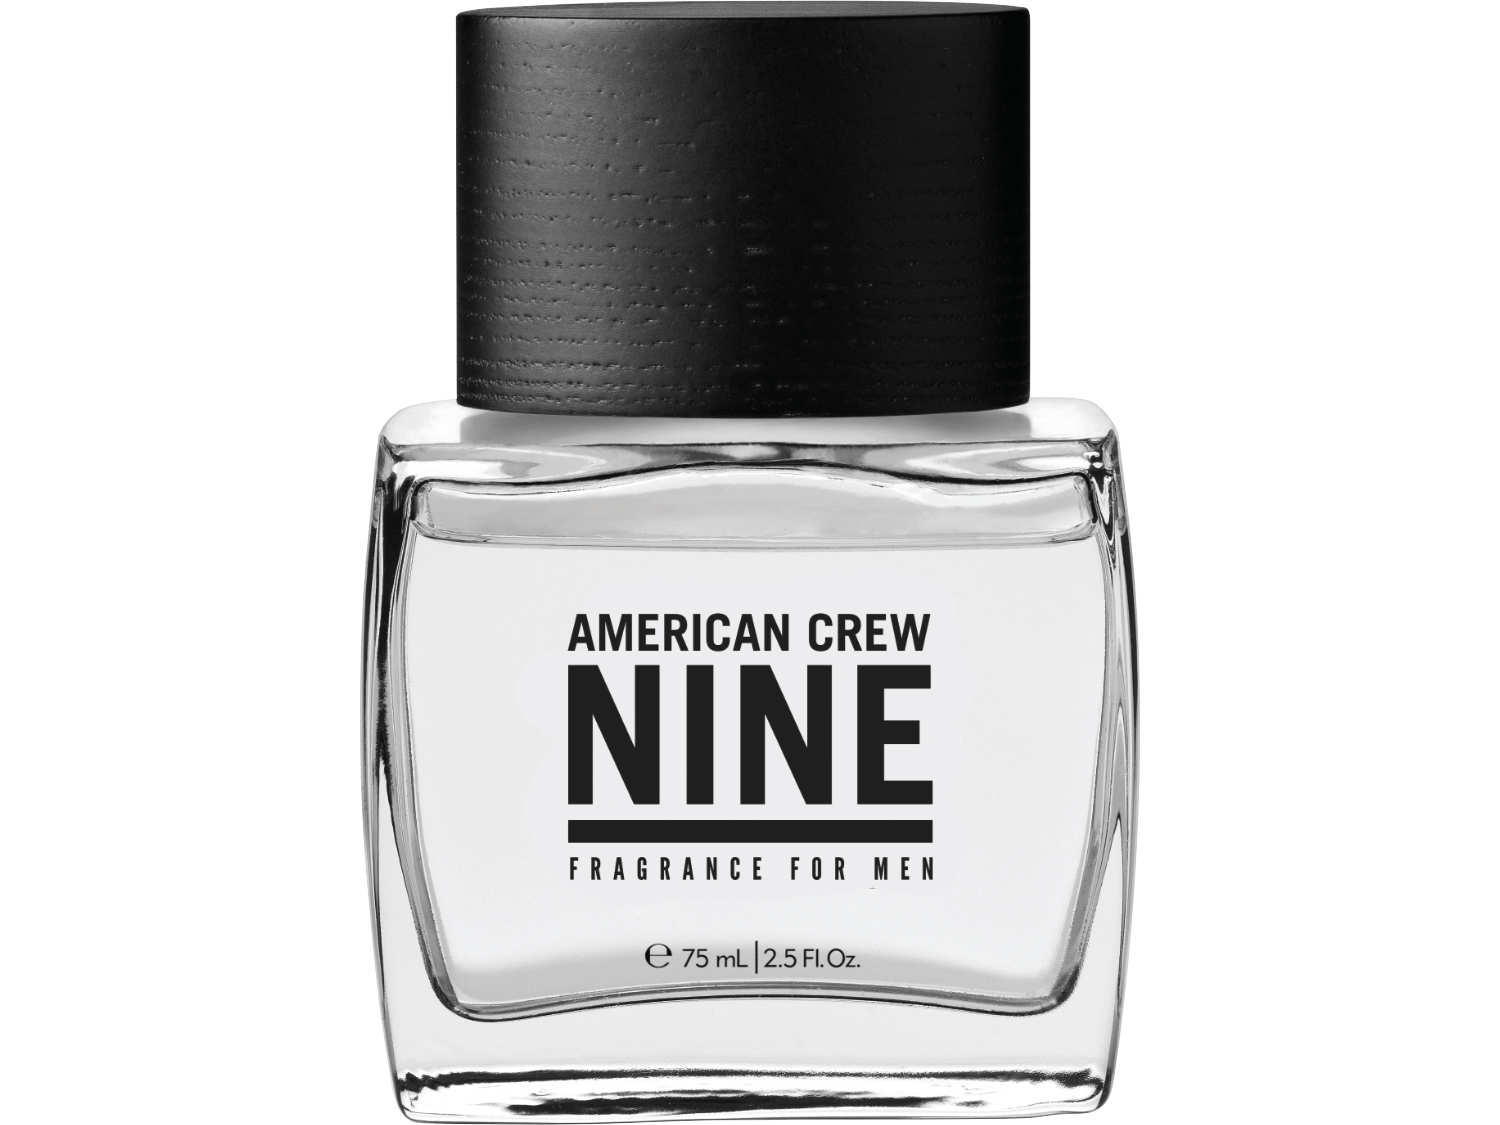 Arma Beauty - American Crew - Nine Fragrance